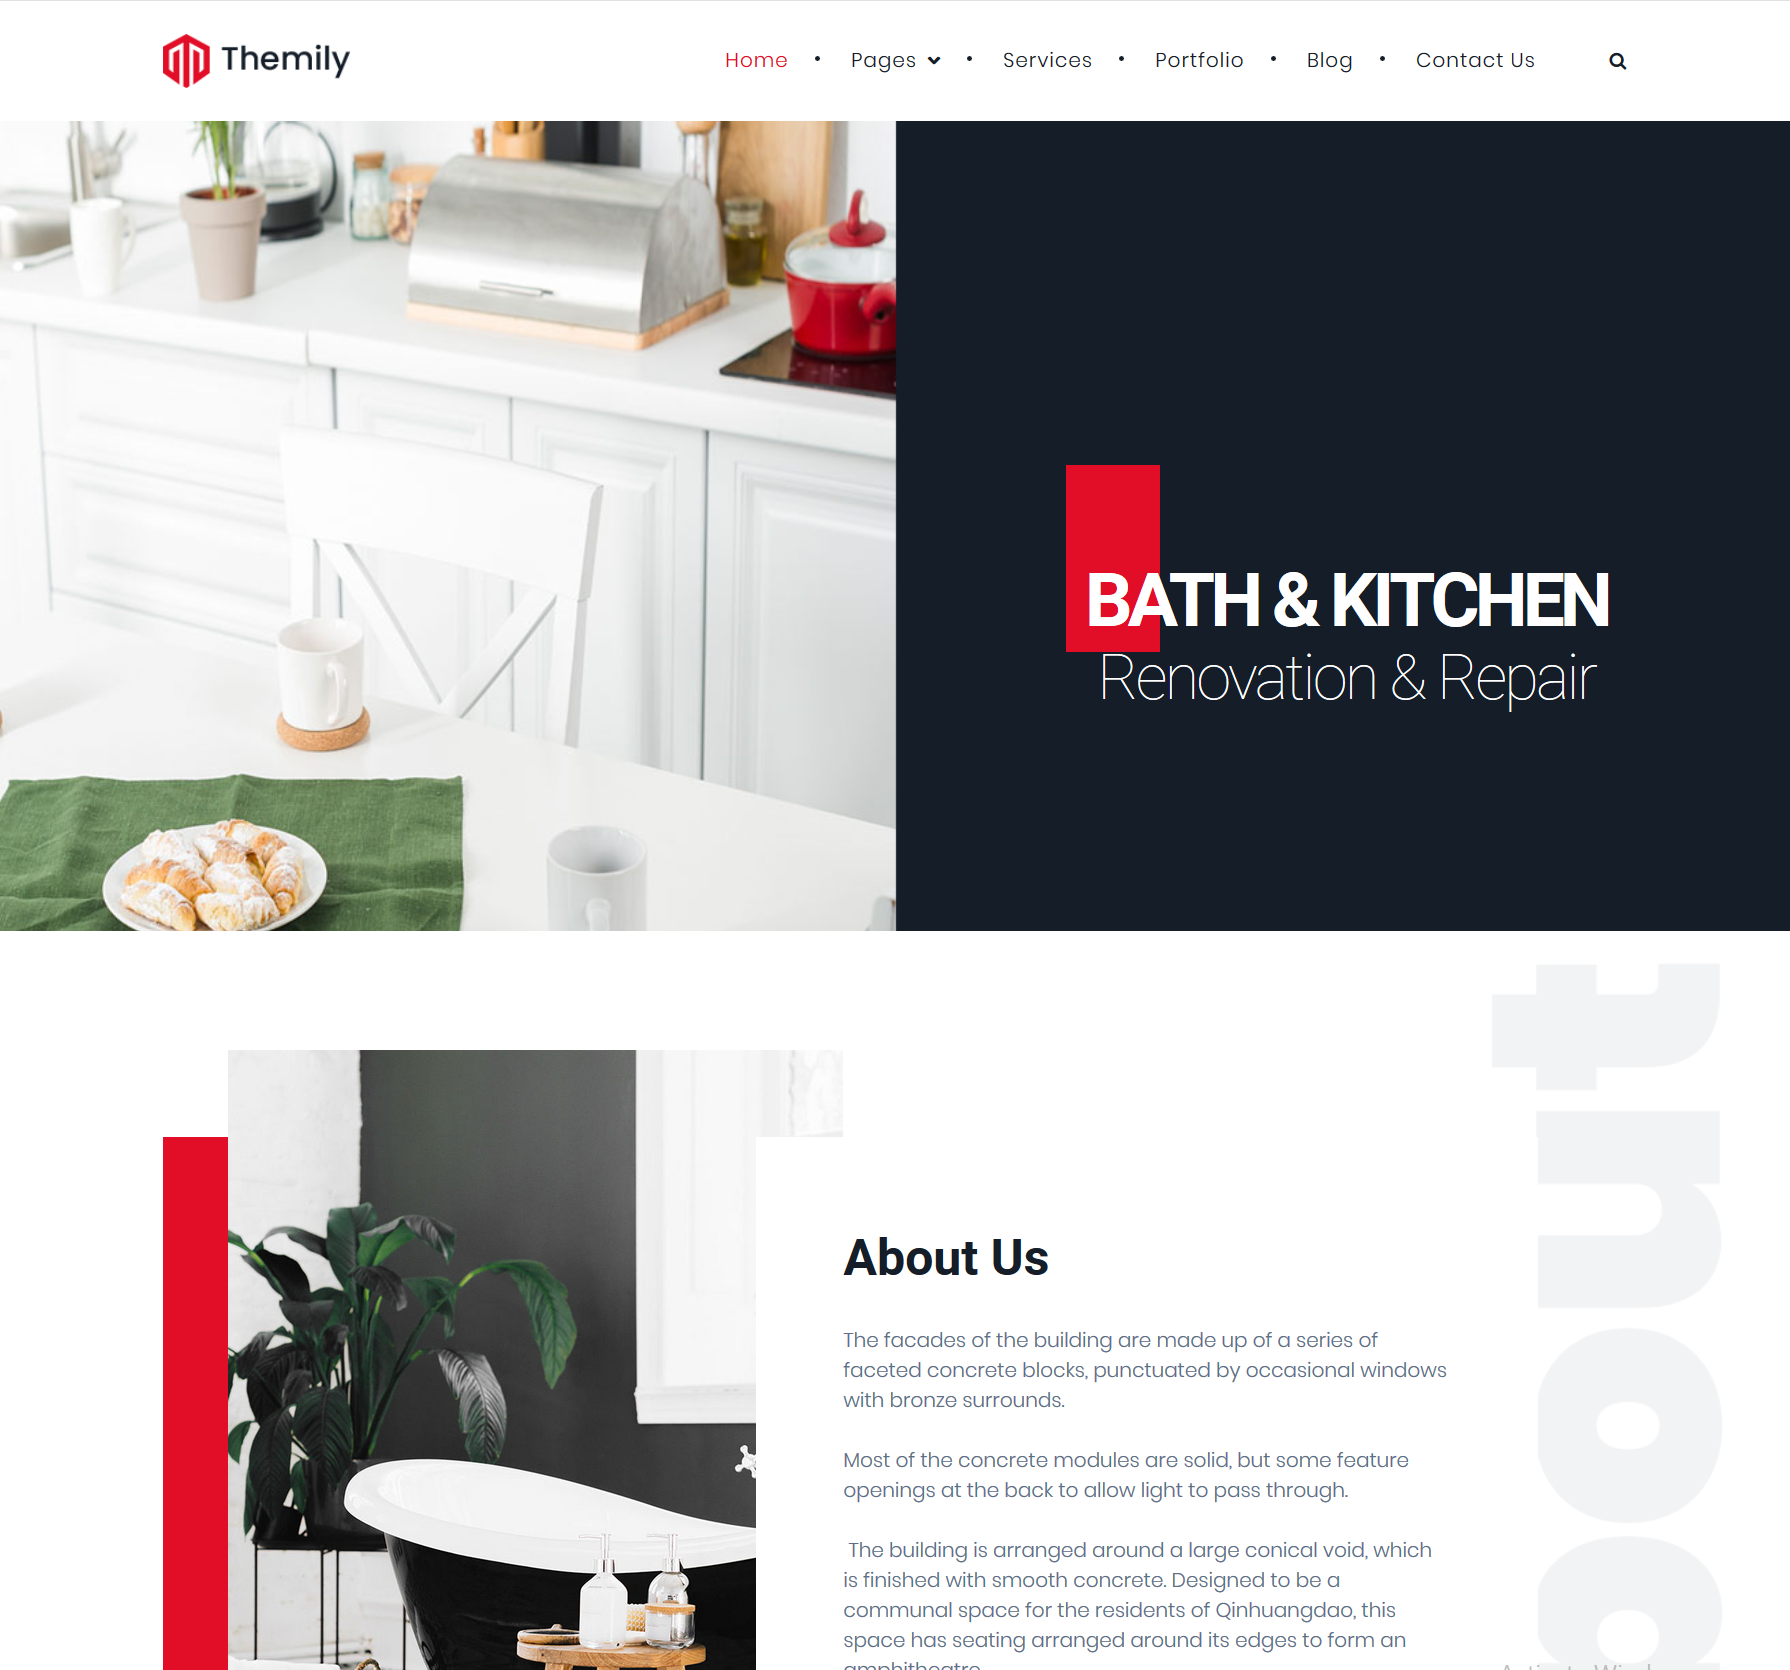 free theme for kitchen and bacth repair and renovation